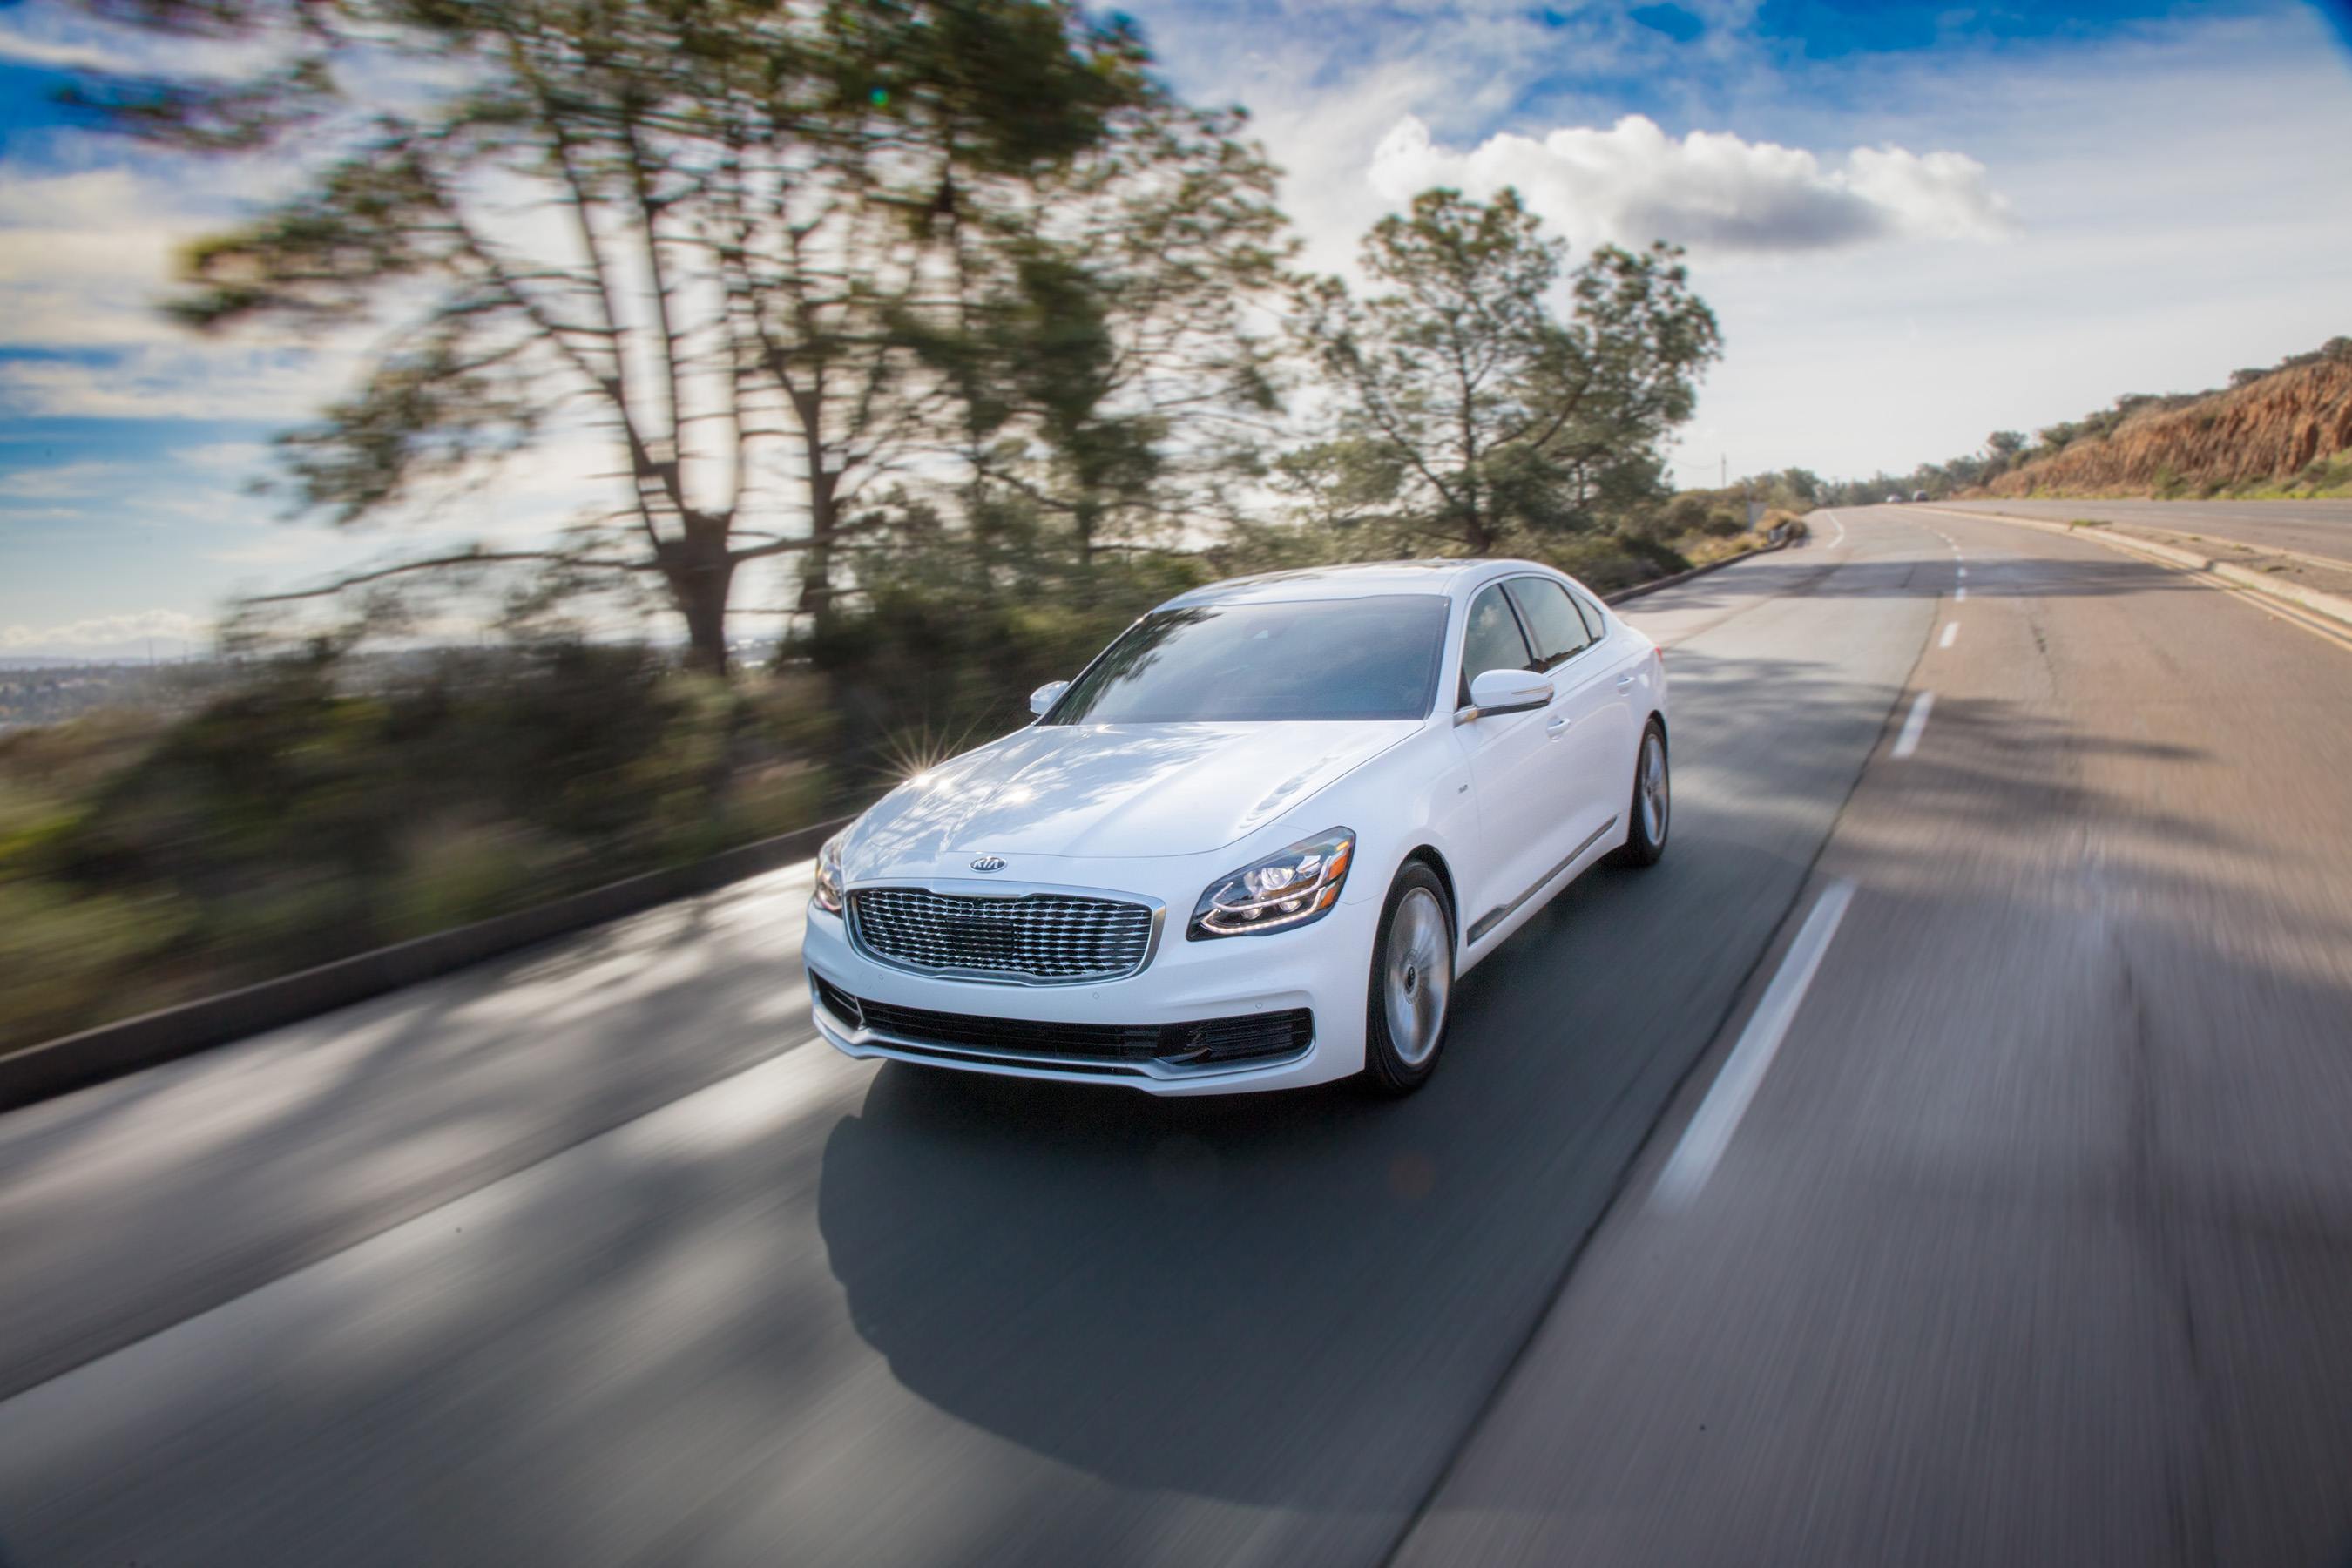 With an array of new systems and safety features, the all-new K900 is the most technologically advanced Kia ever.